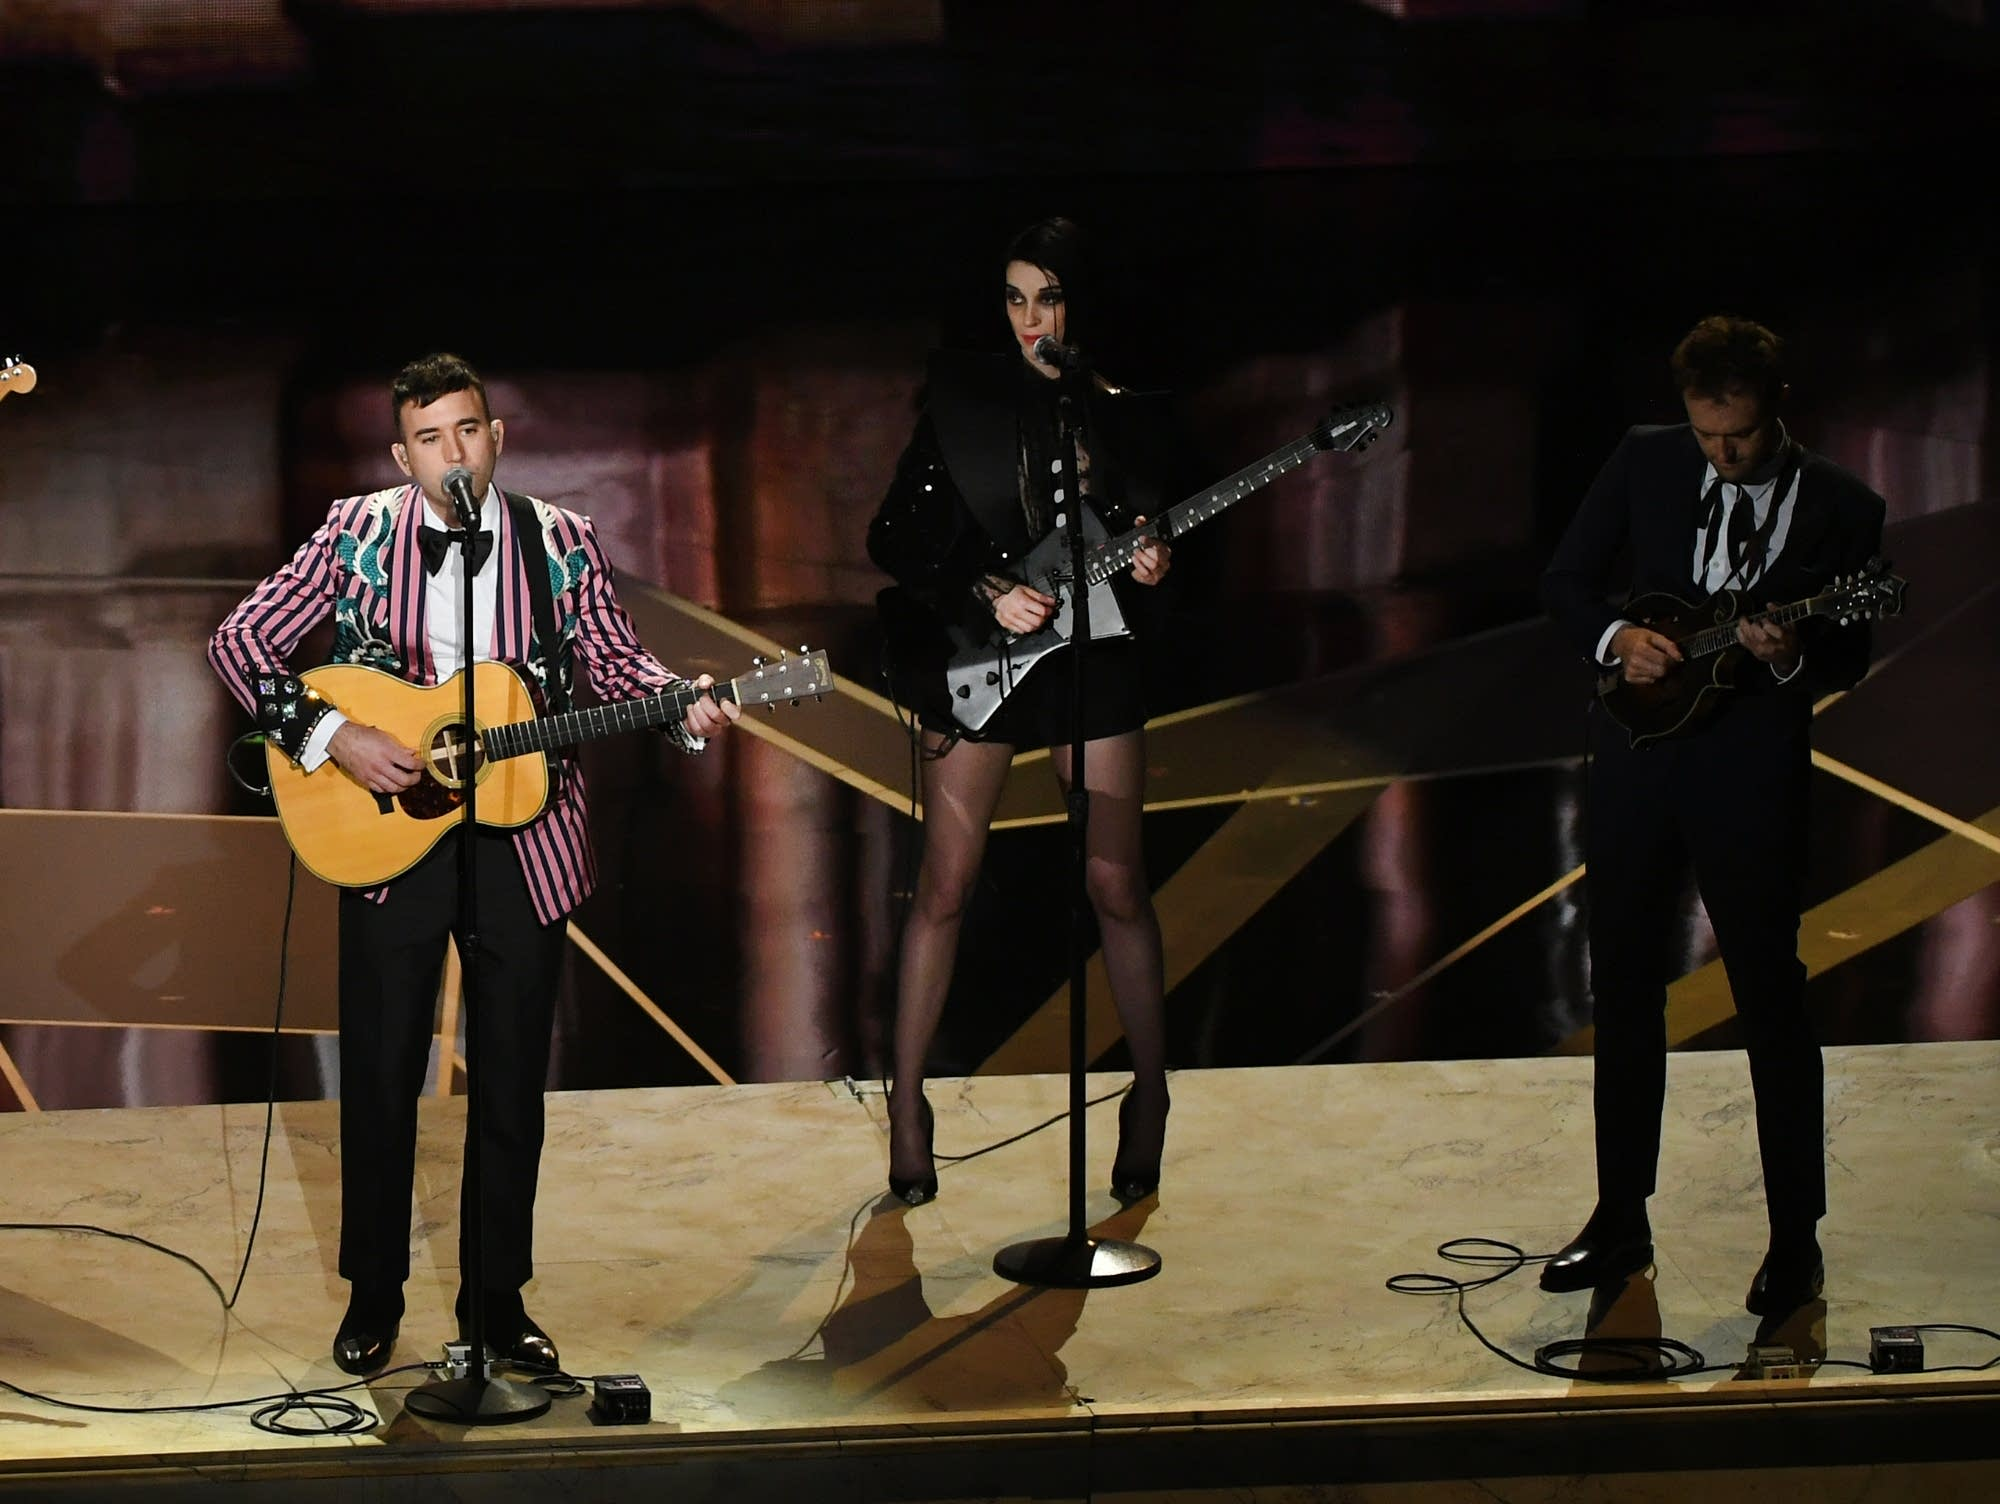 Sufjan Stevens performs with St. Vincent and Chris Thile.